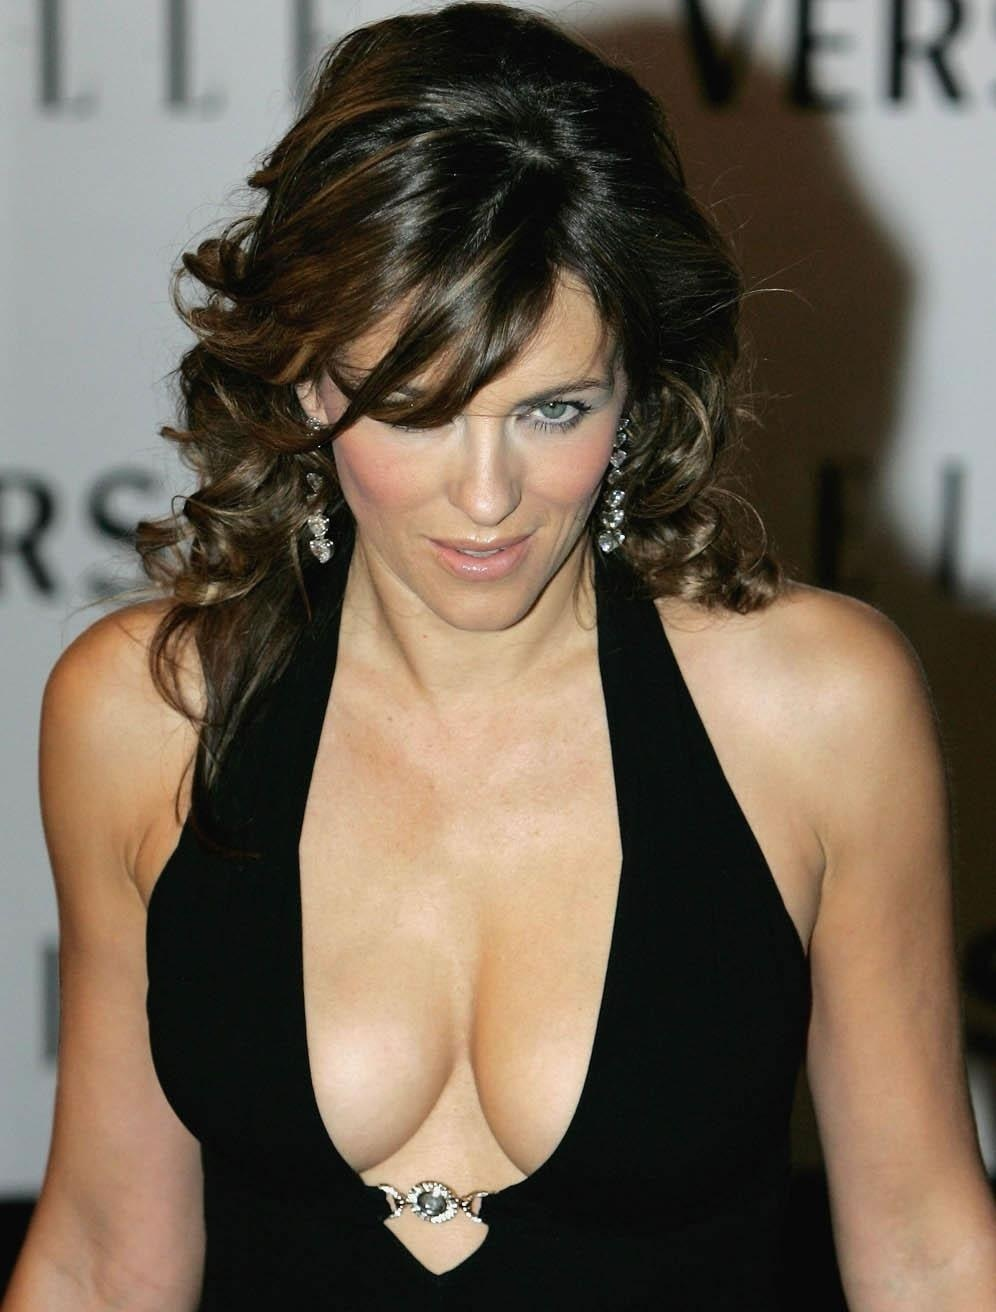 Elizabeth Hurley Hot Body